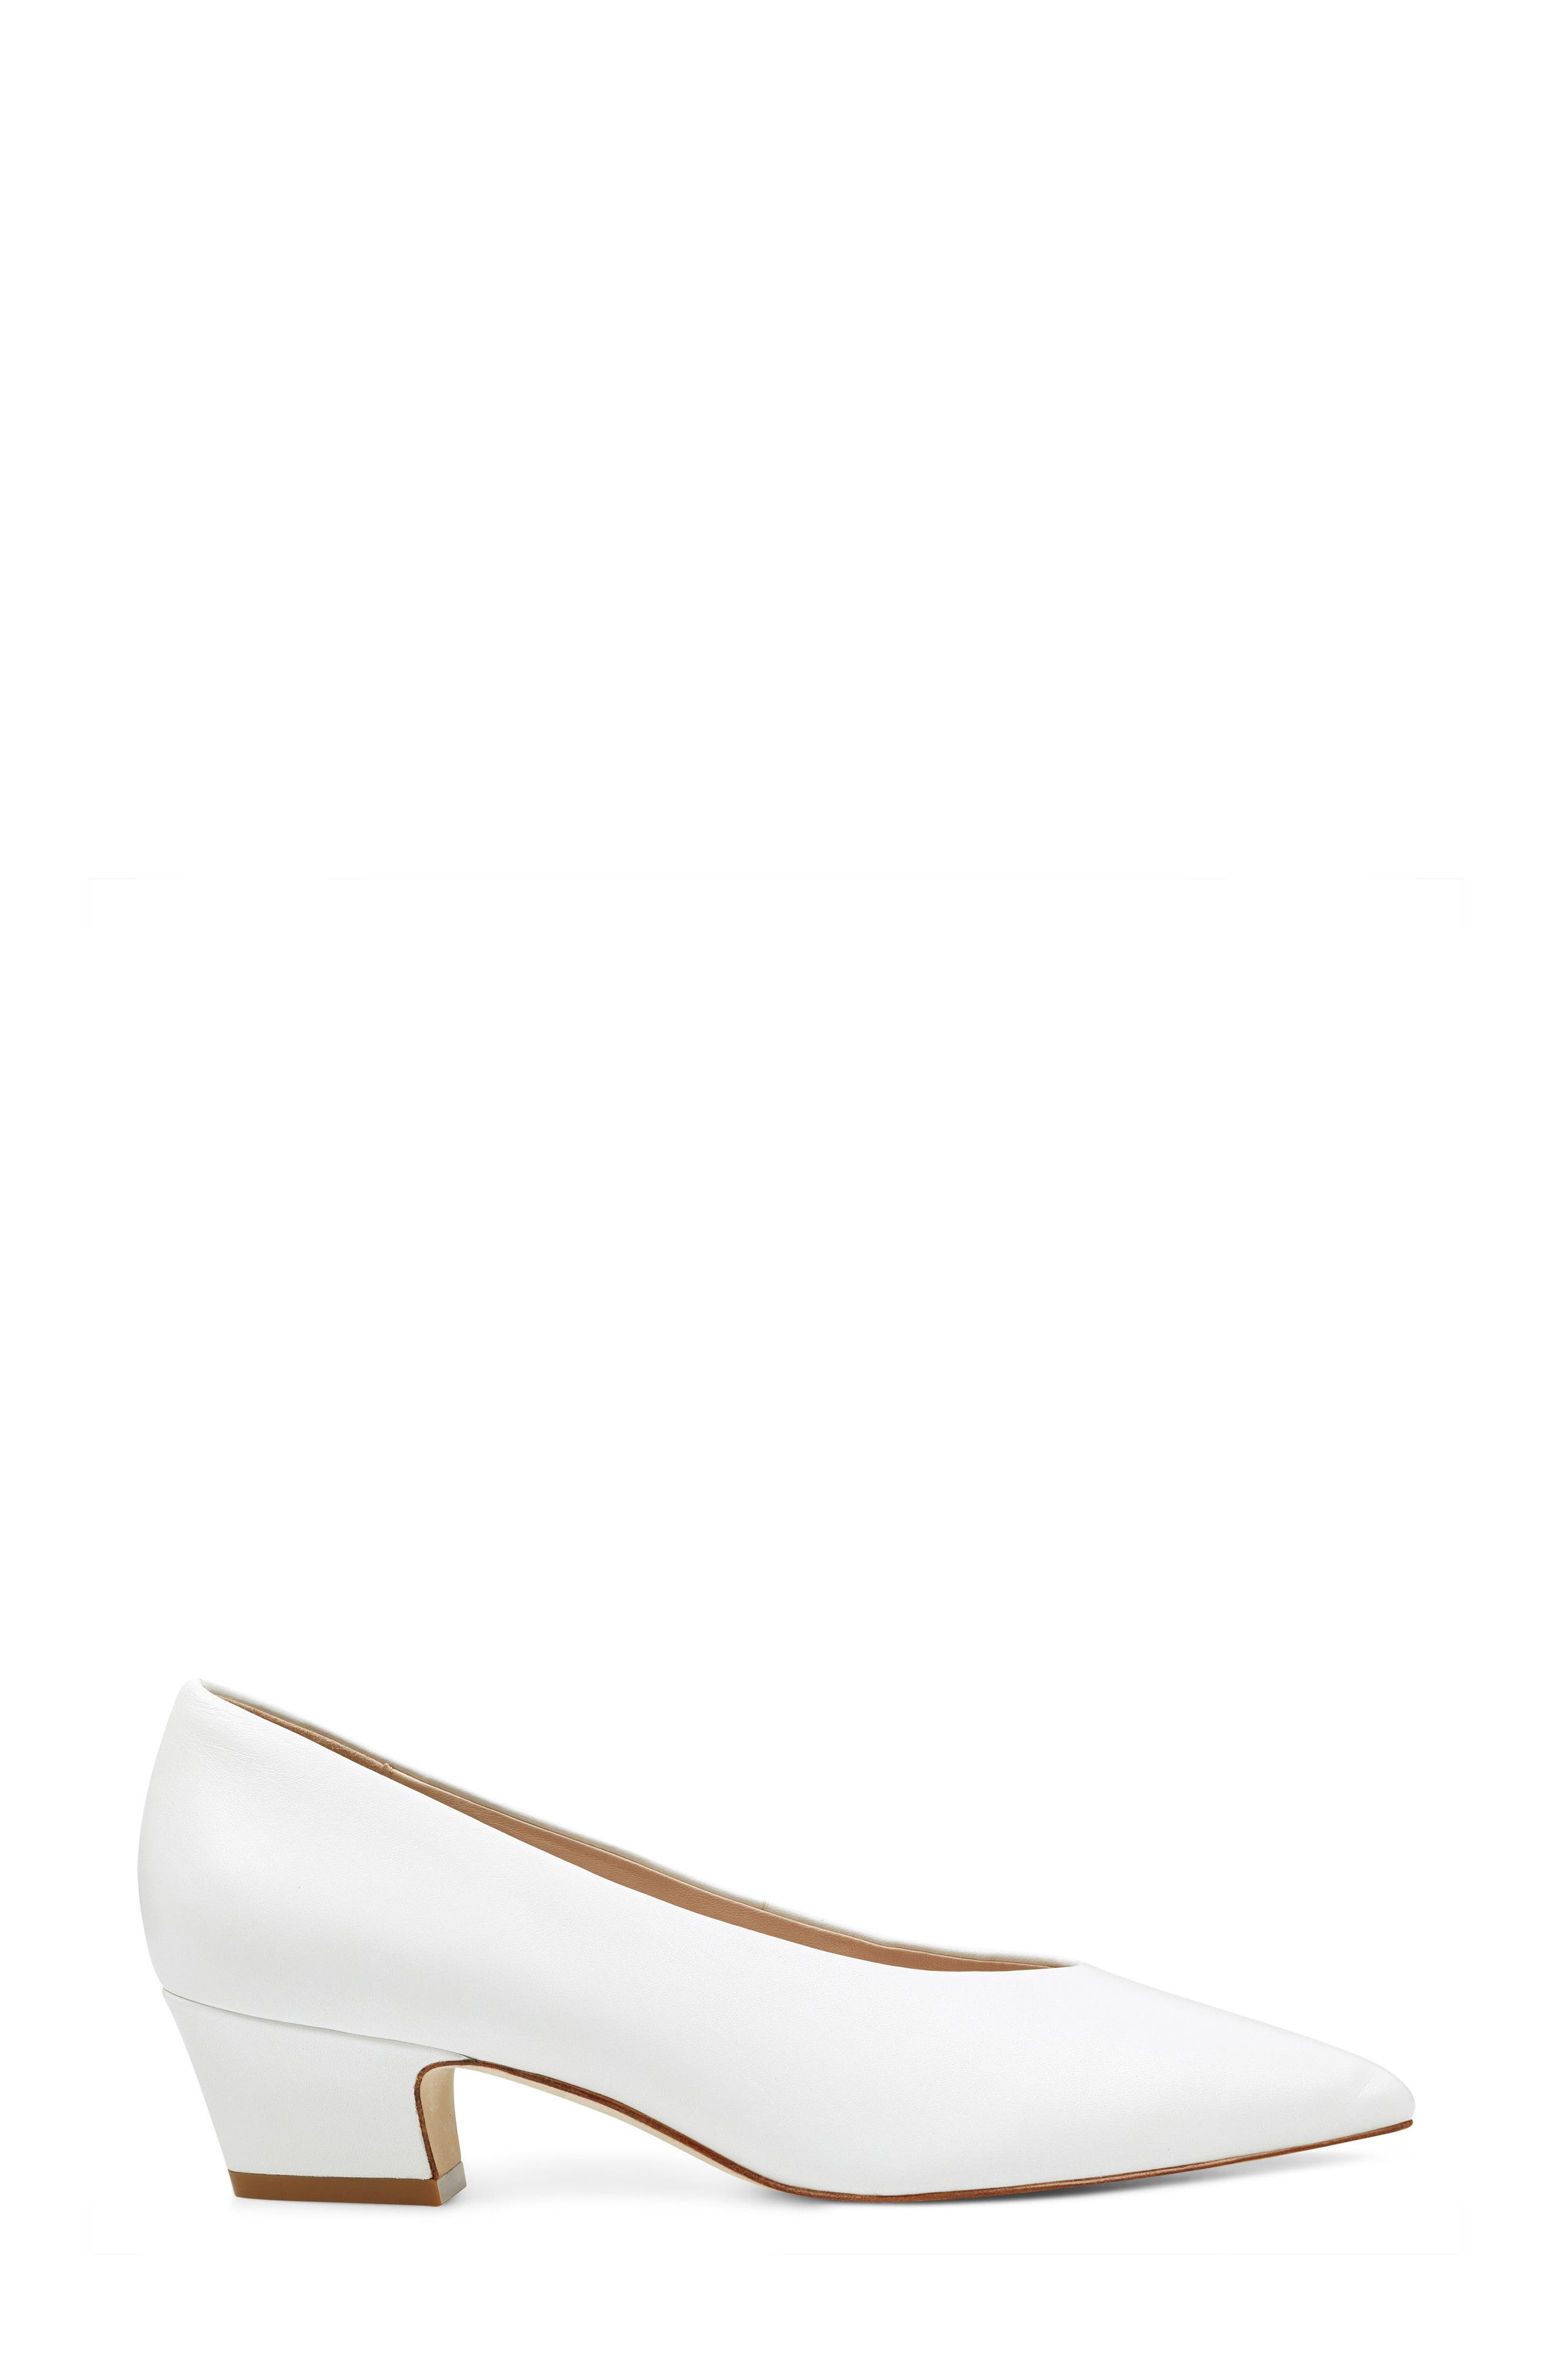 Kendra - 40th Anniversary Capsule Collection Pump,                             Alternate thumbnail 3, color,                             White Leather